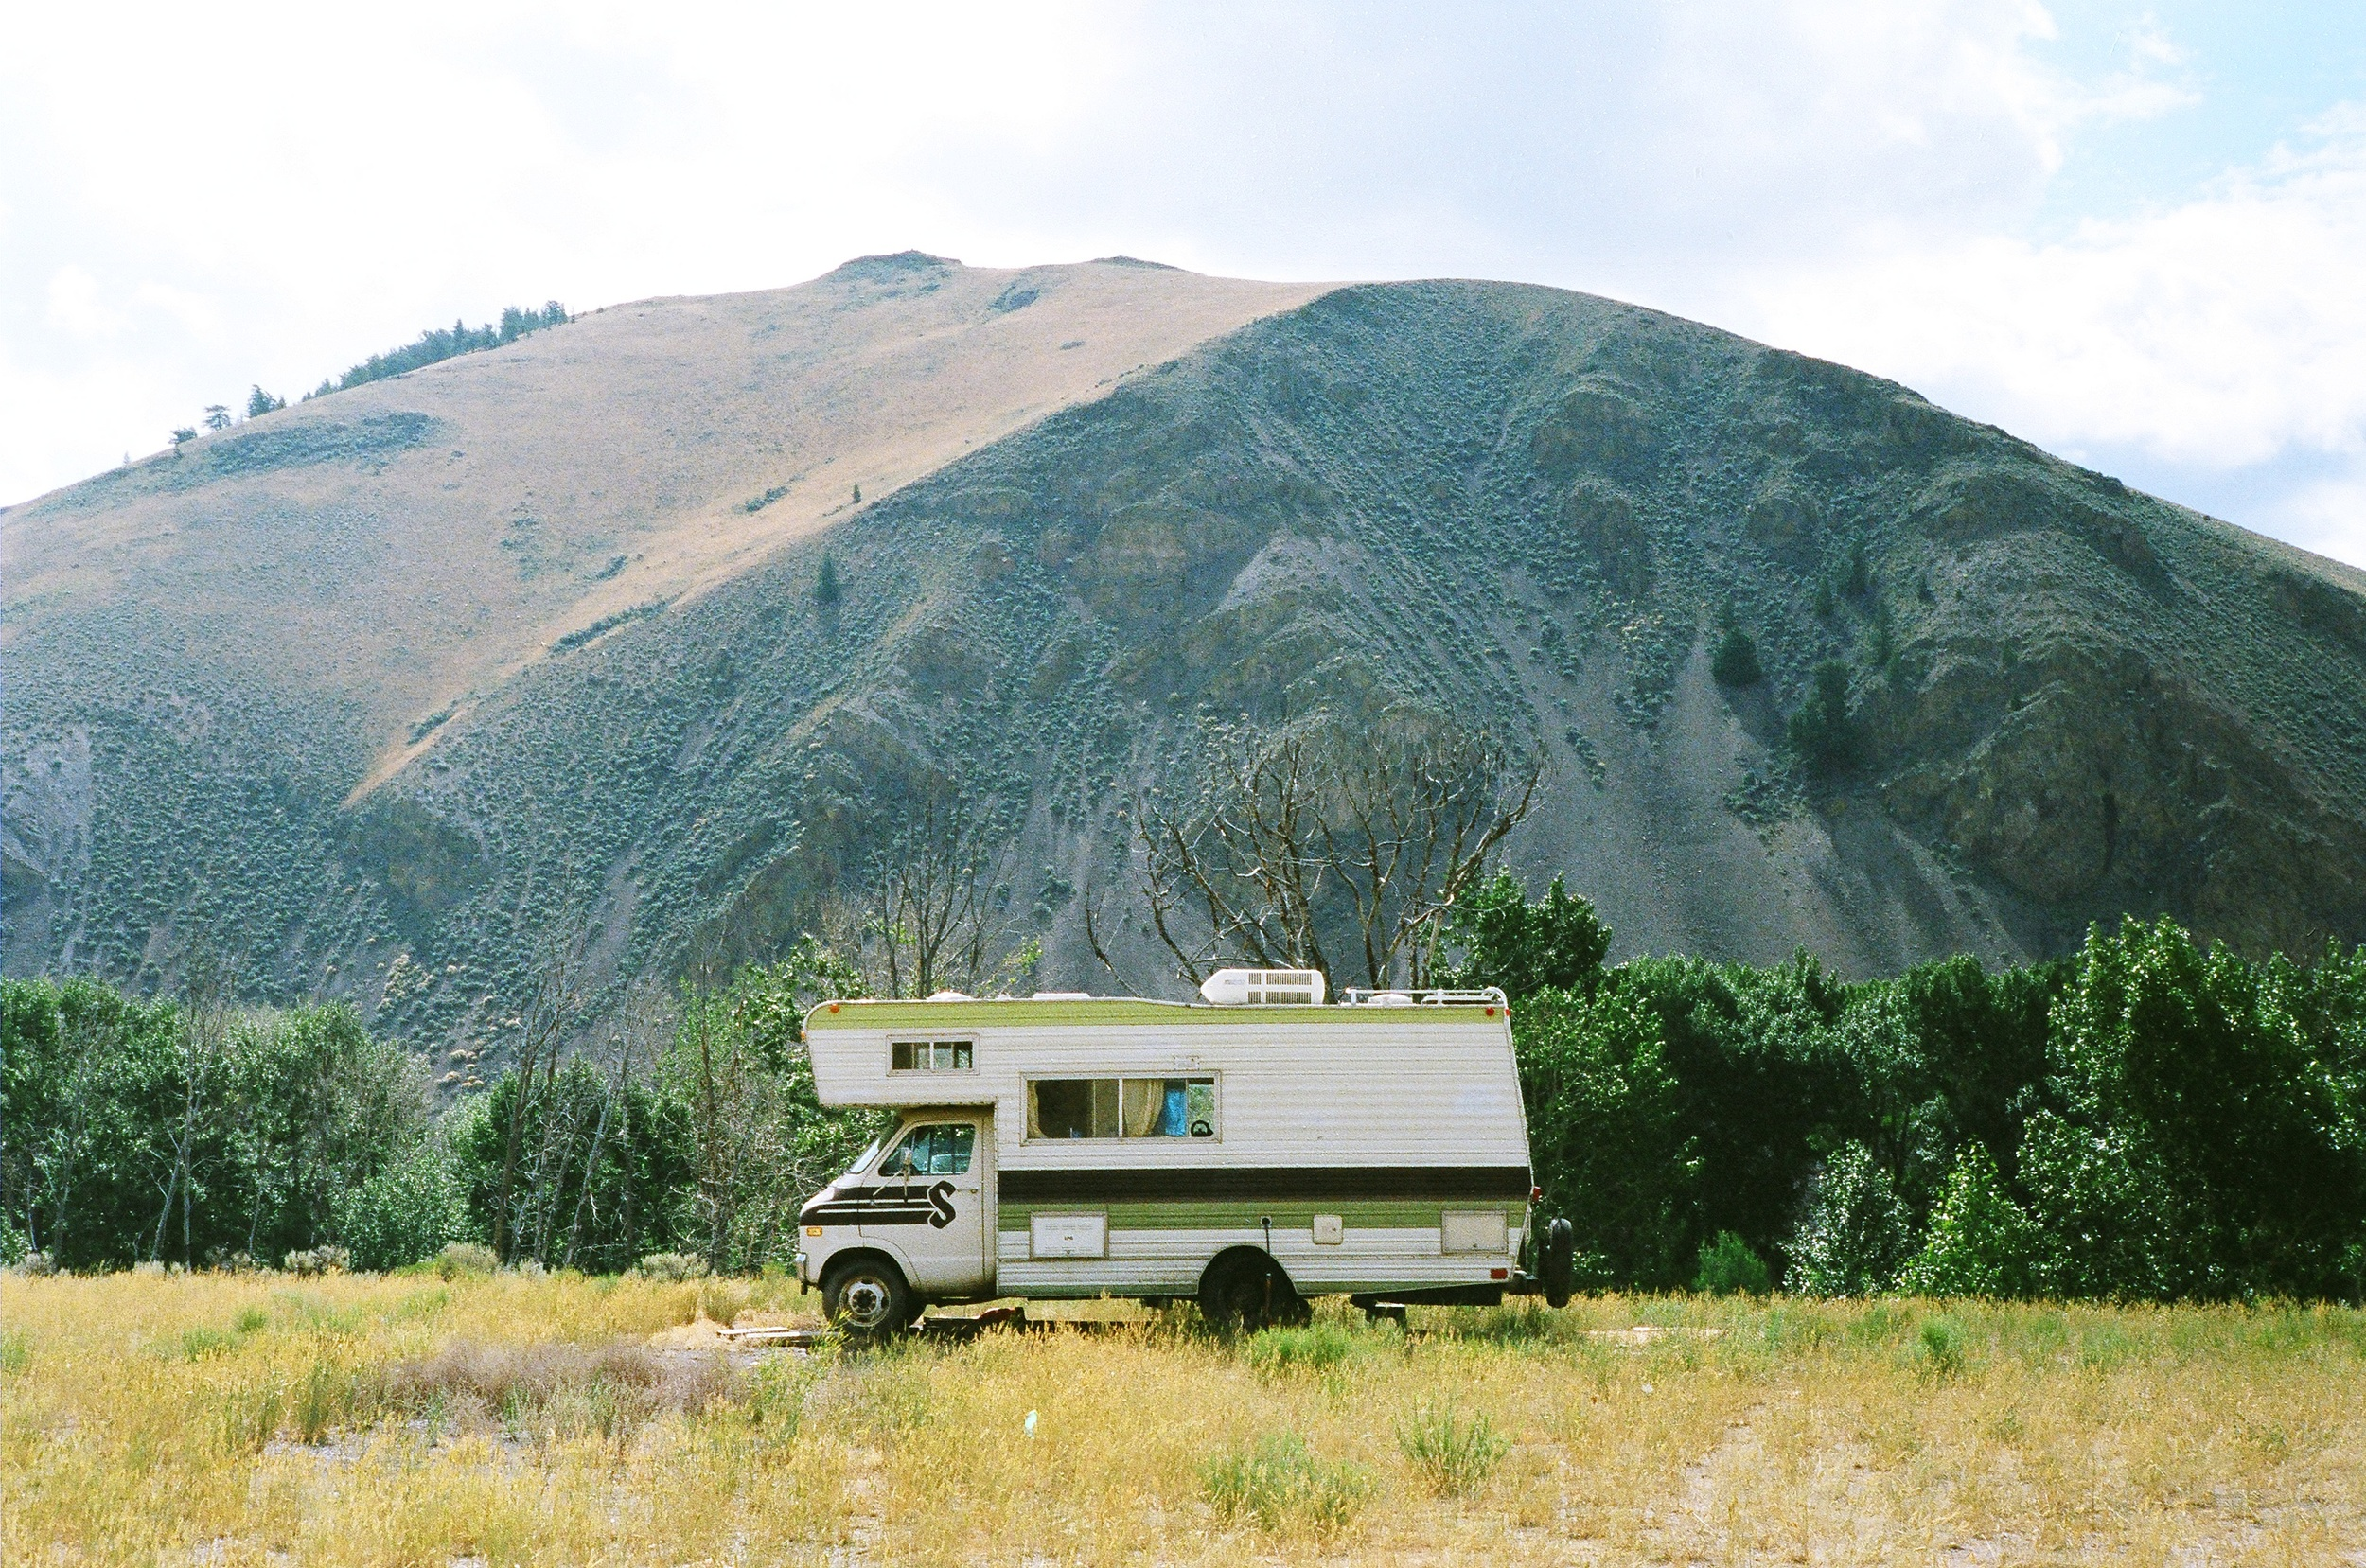 Cody Barnhill's RV, Harvey hiding behind the trees at Idaho Base Camp.